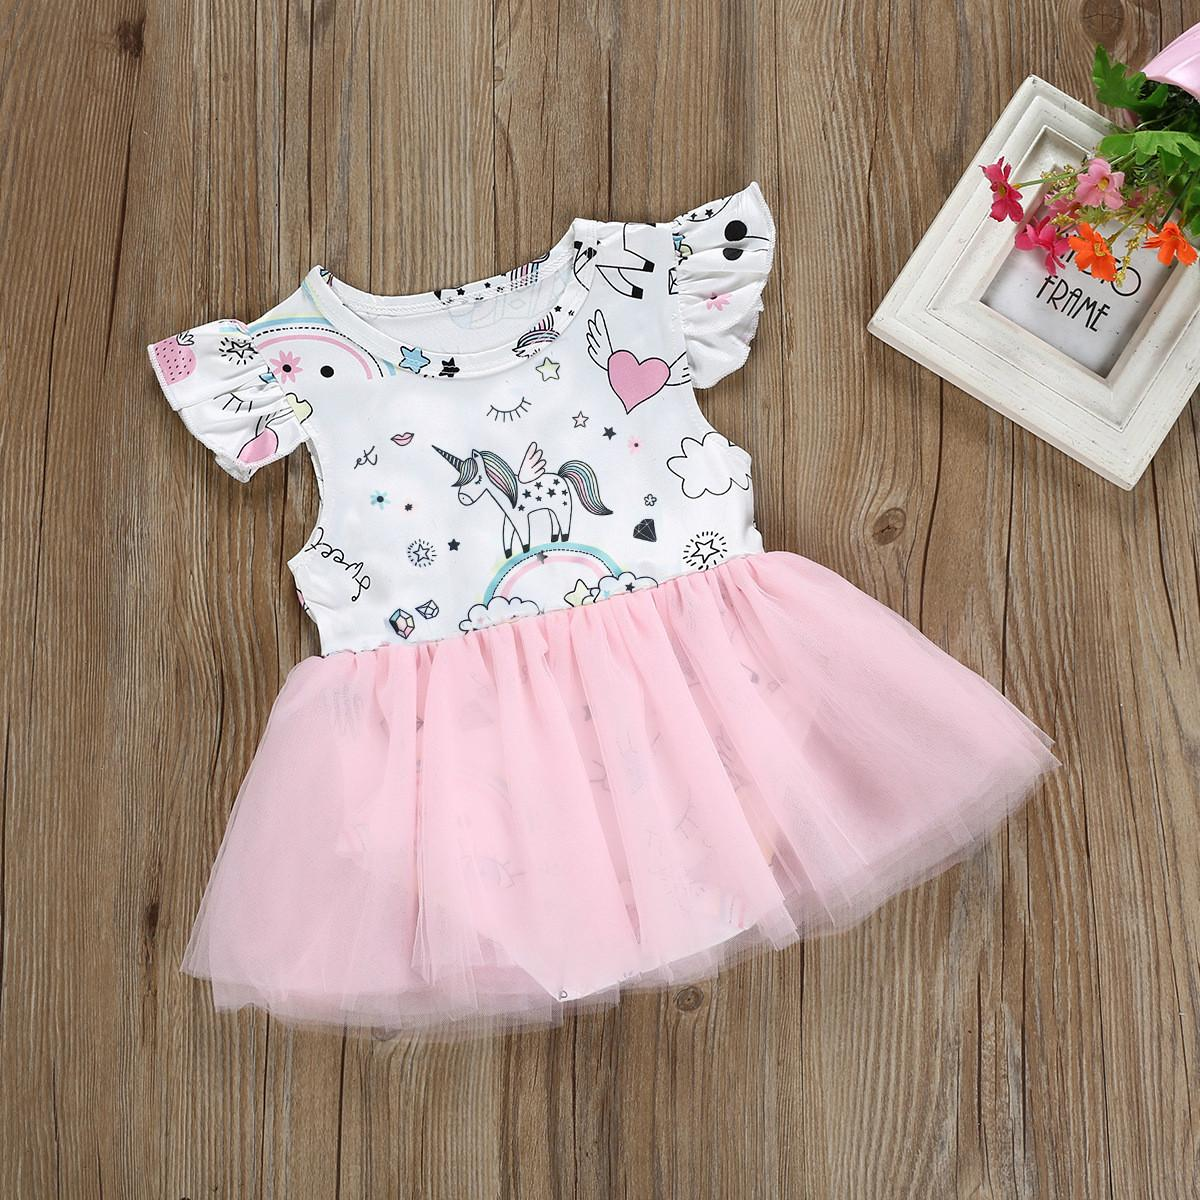 f38056d9a54a 2019 New Baby Girls Romper Kids Fashion Flying Sleeves Unicorn ...